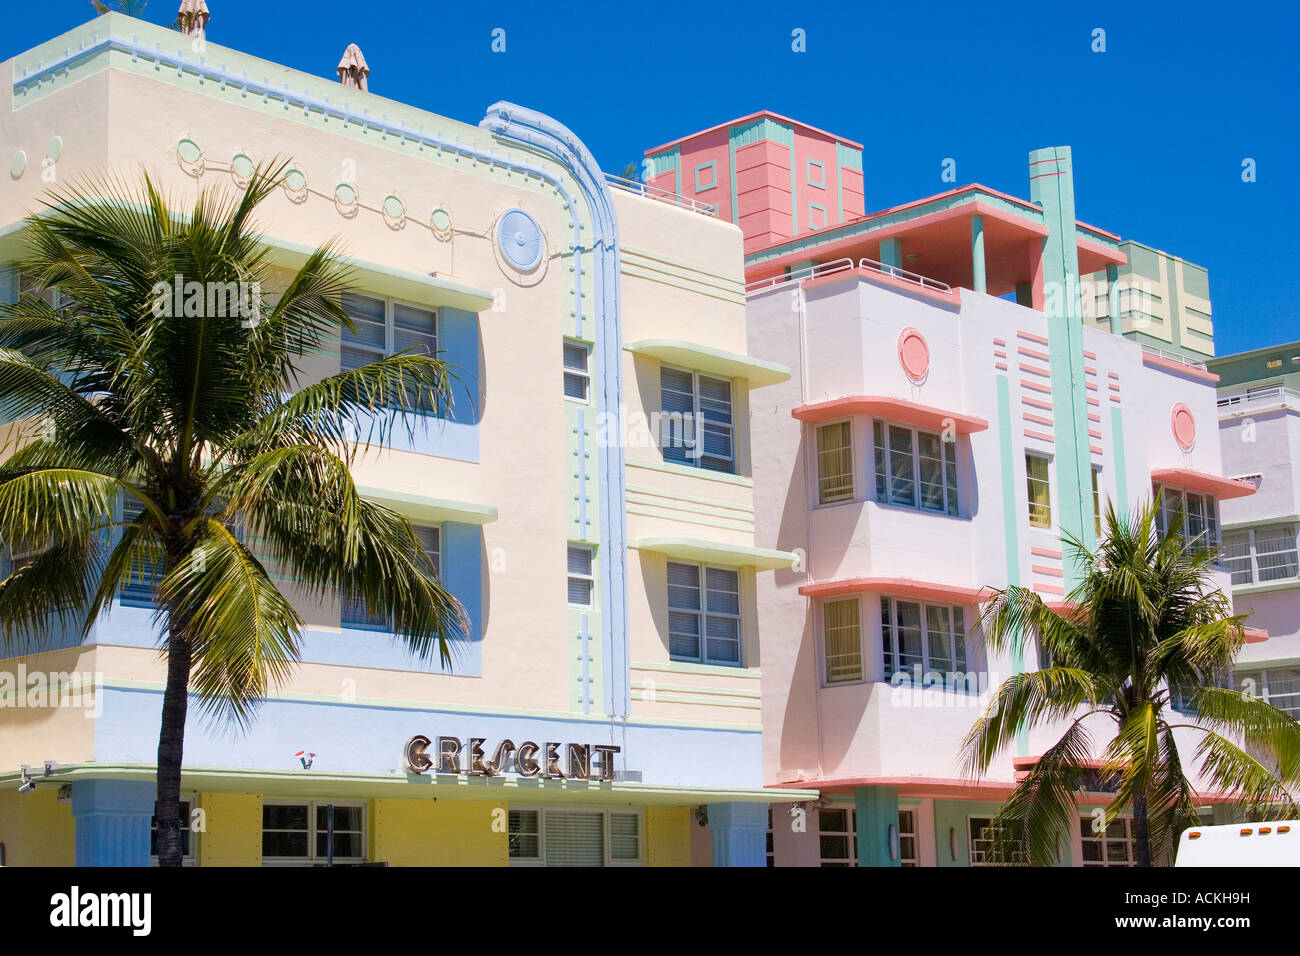 palm trees colourful buildings miami stock photos palm trees